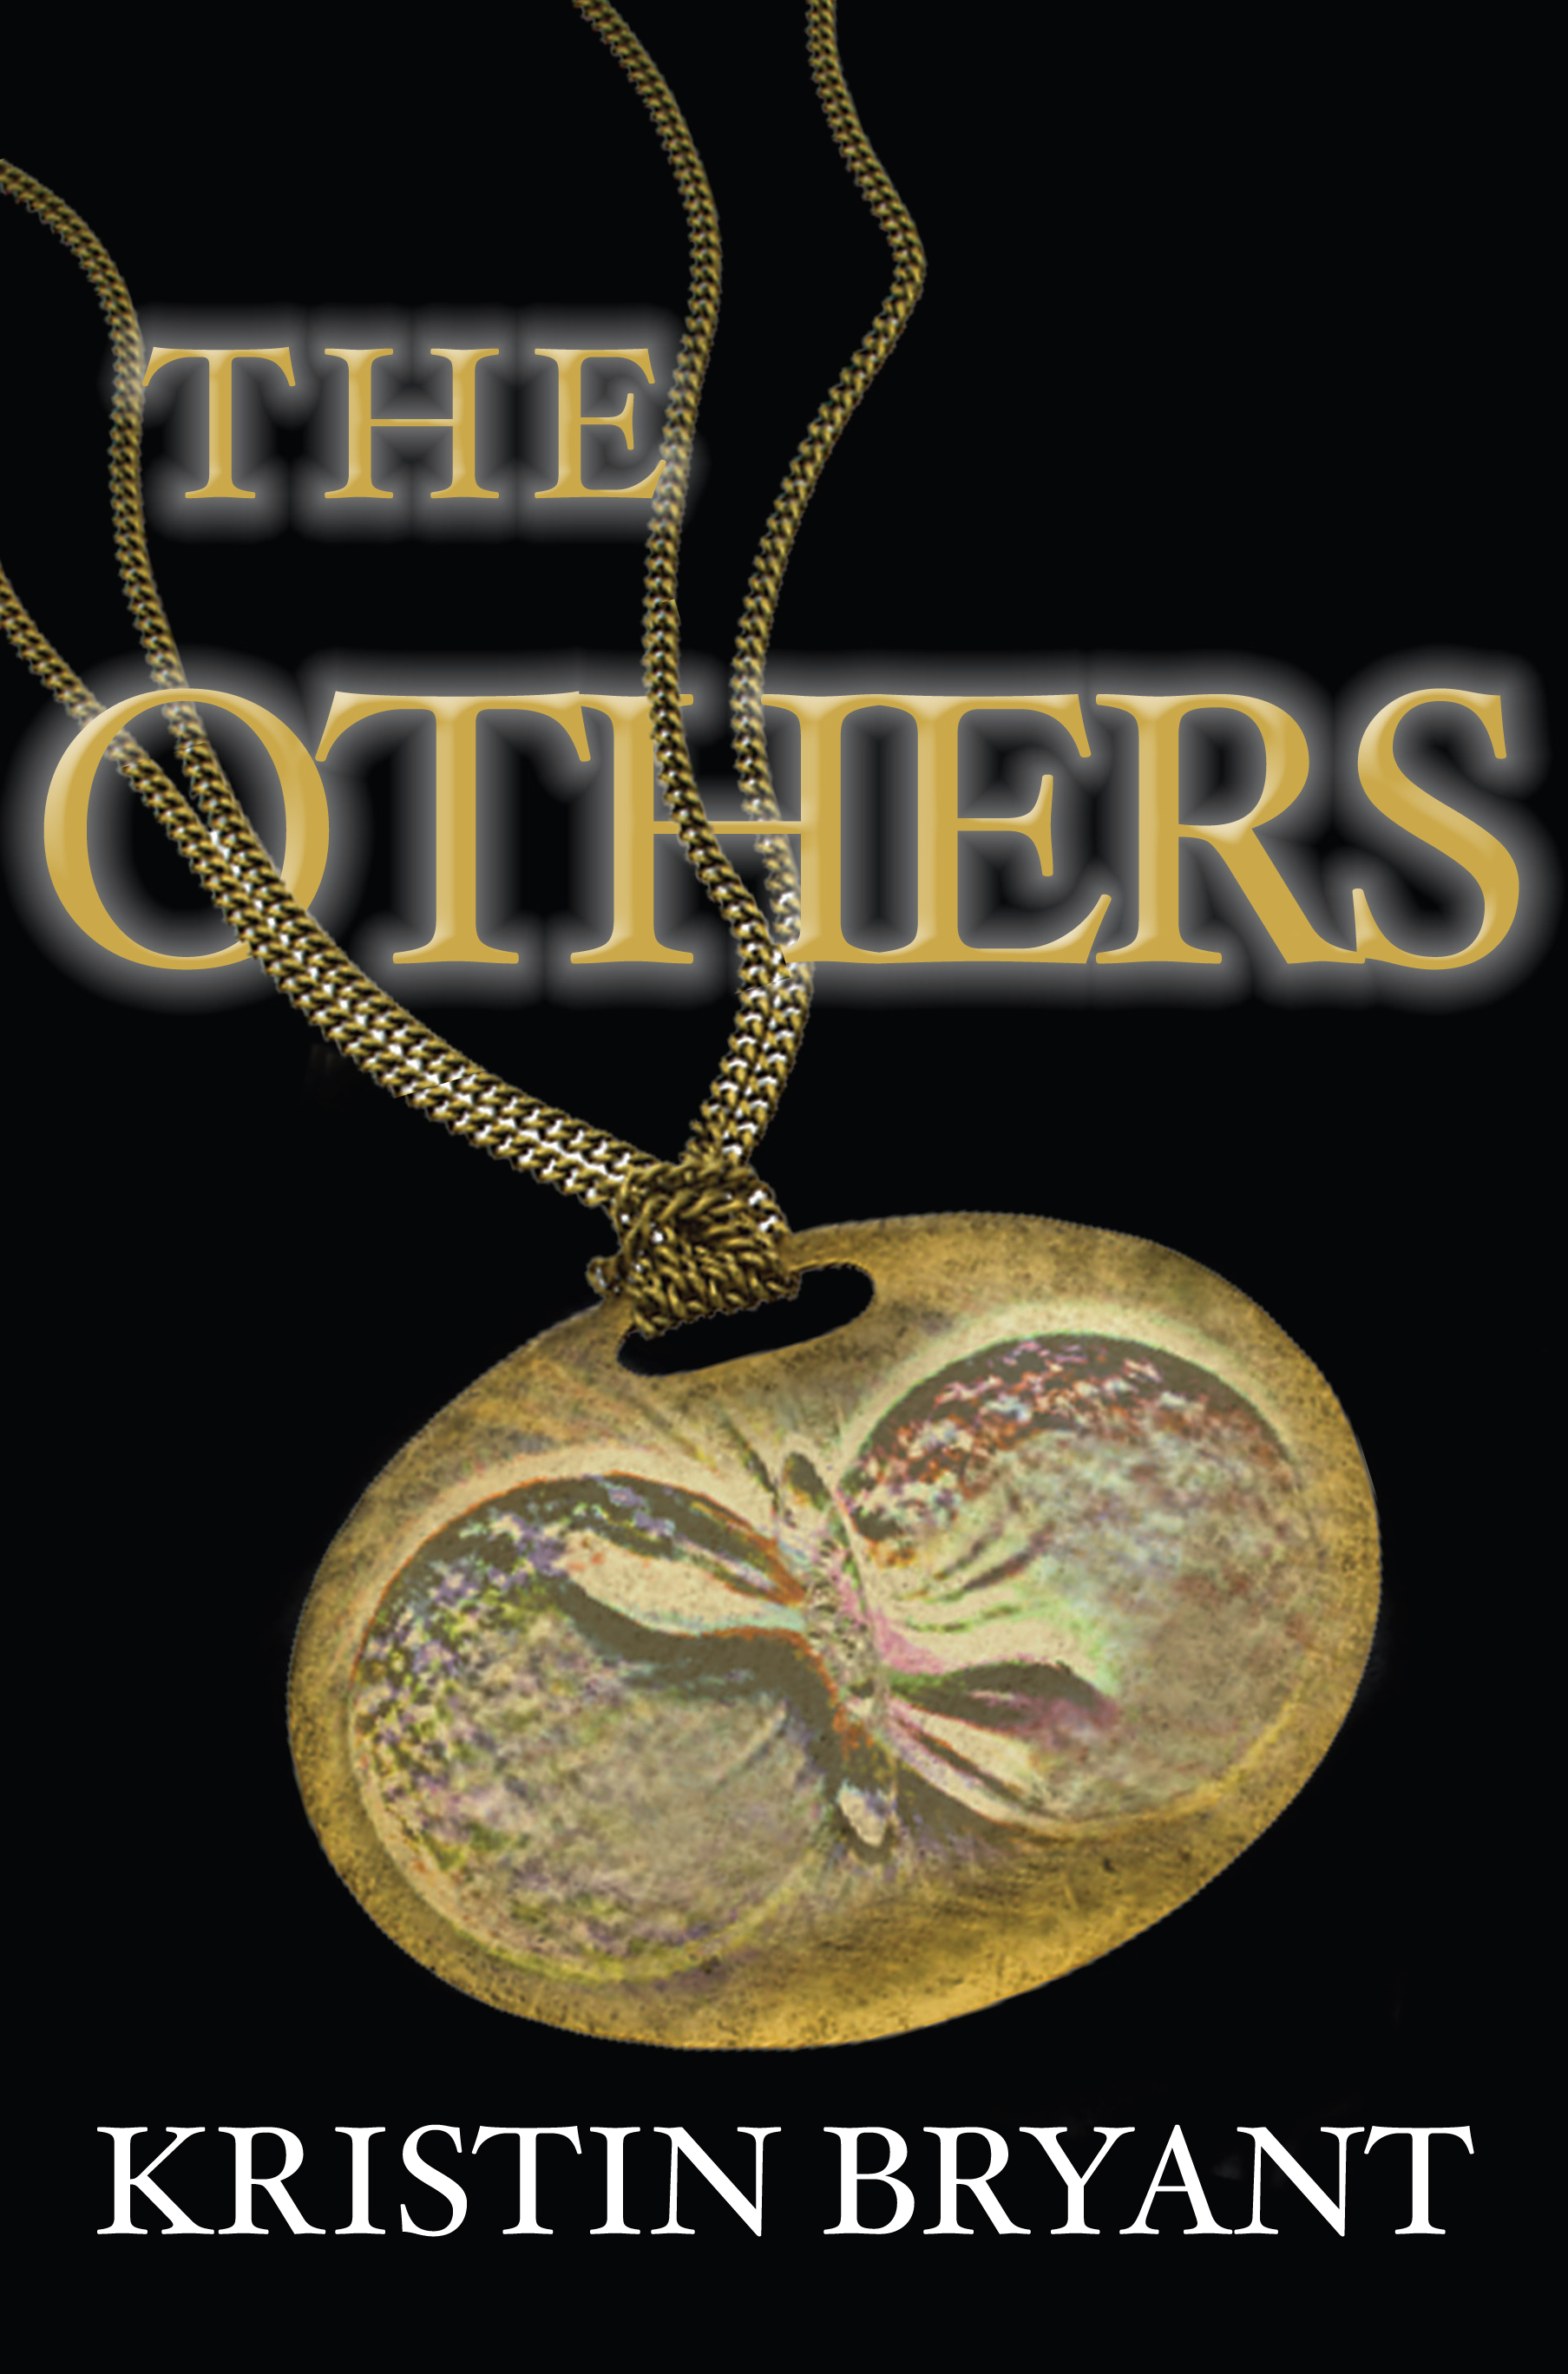 The Others Blog Tour Giveaway